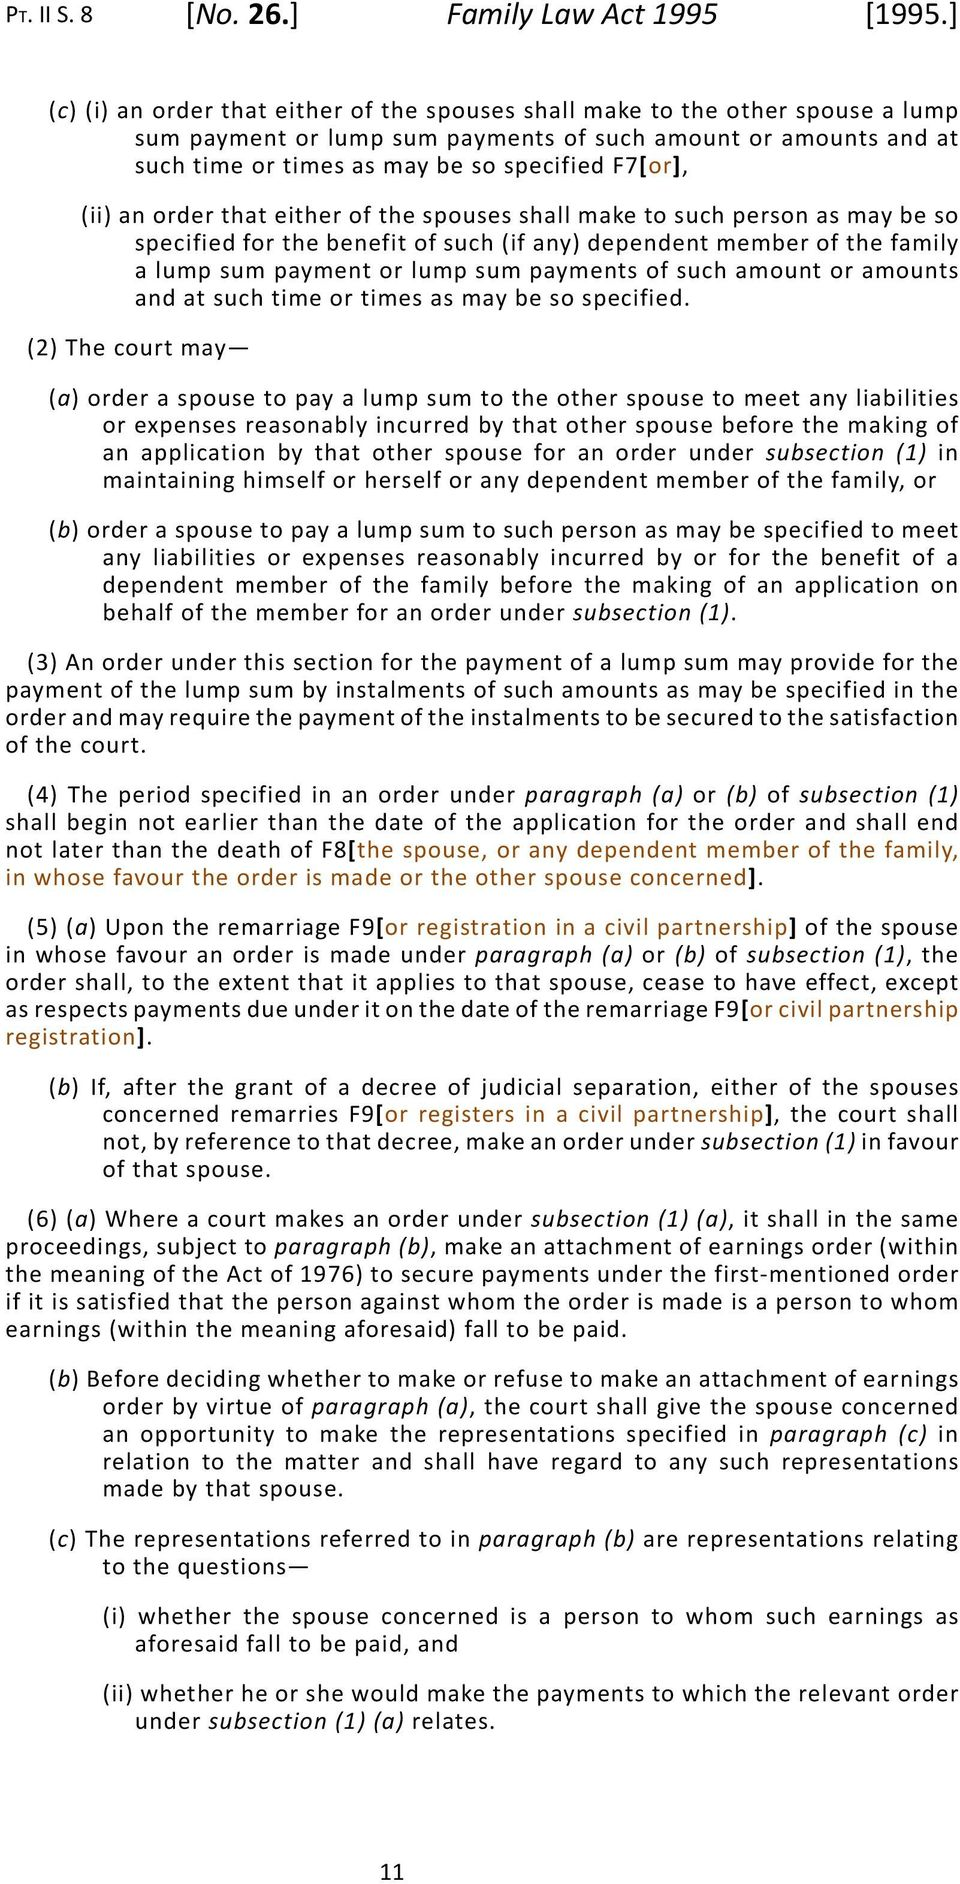 (ii) an order that either of the spouses shall make to such person as may be so specified for the benefit of such (if any) dependent member of the family a lump sum payment or lump sum payments of